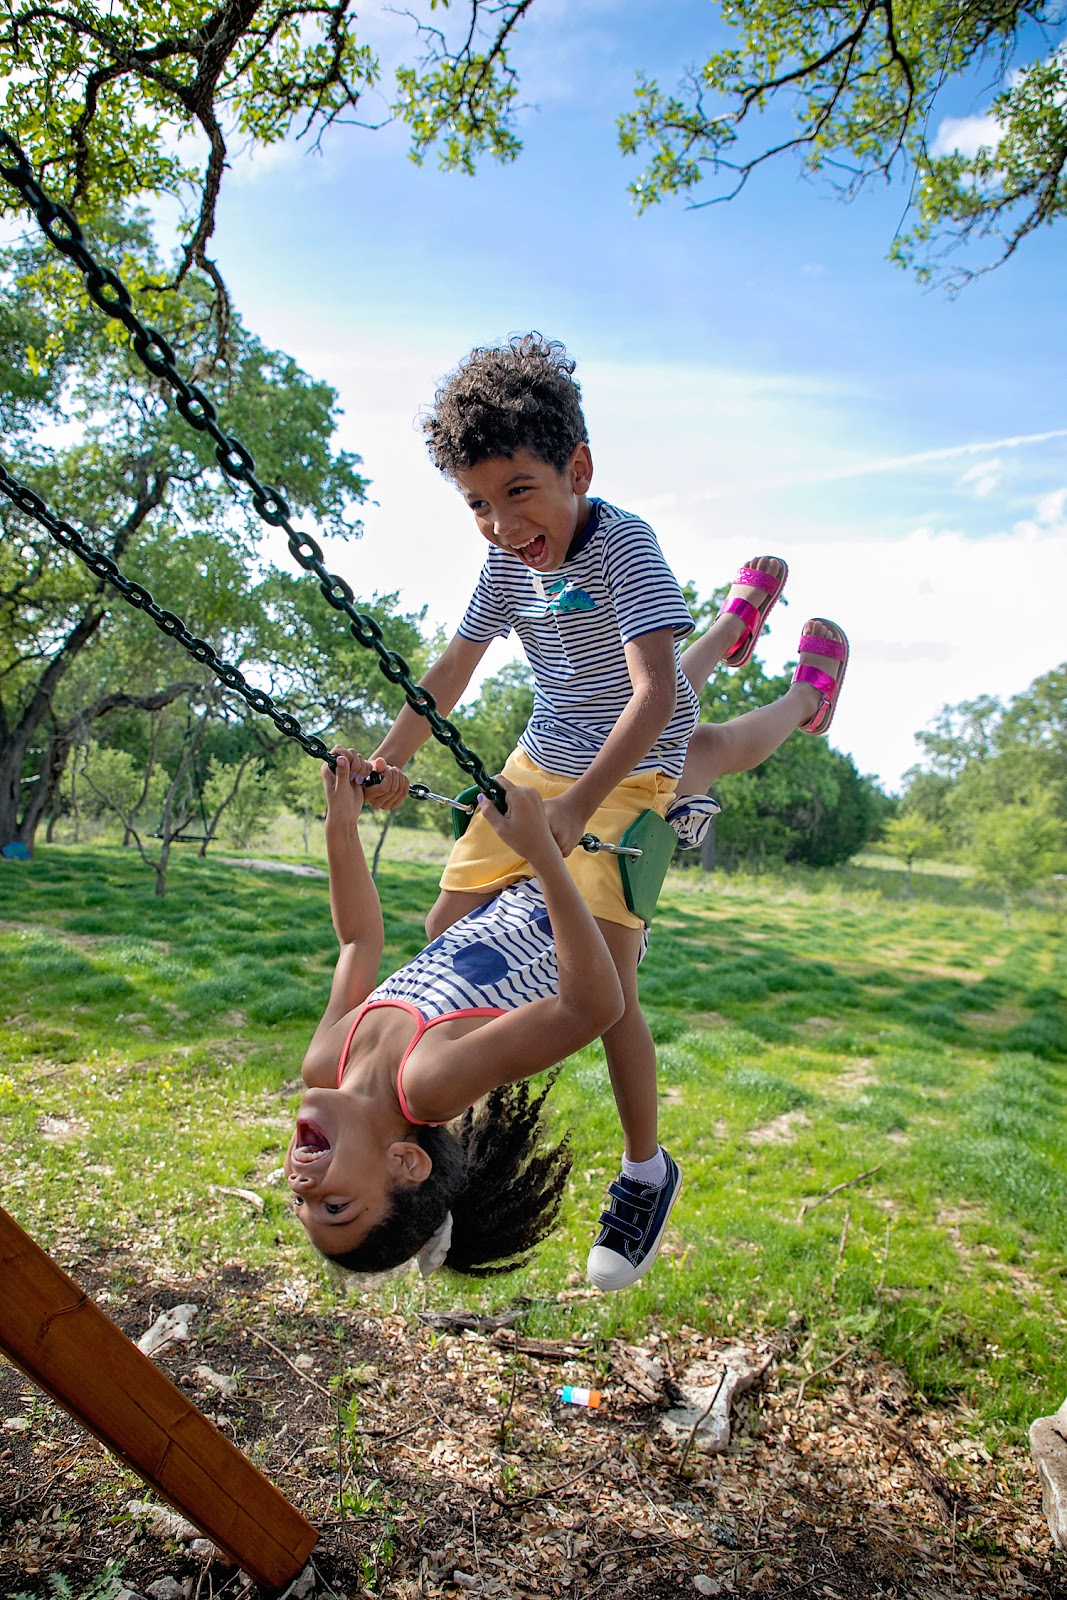 Biracial brother and sister swinging together on a swing set wearing Stitch Fix Kids.